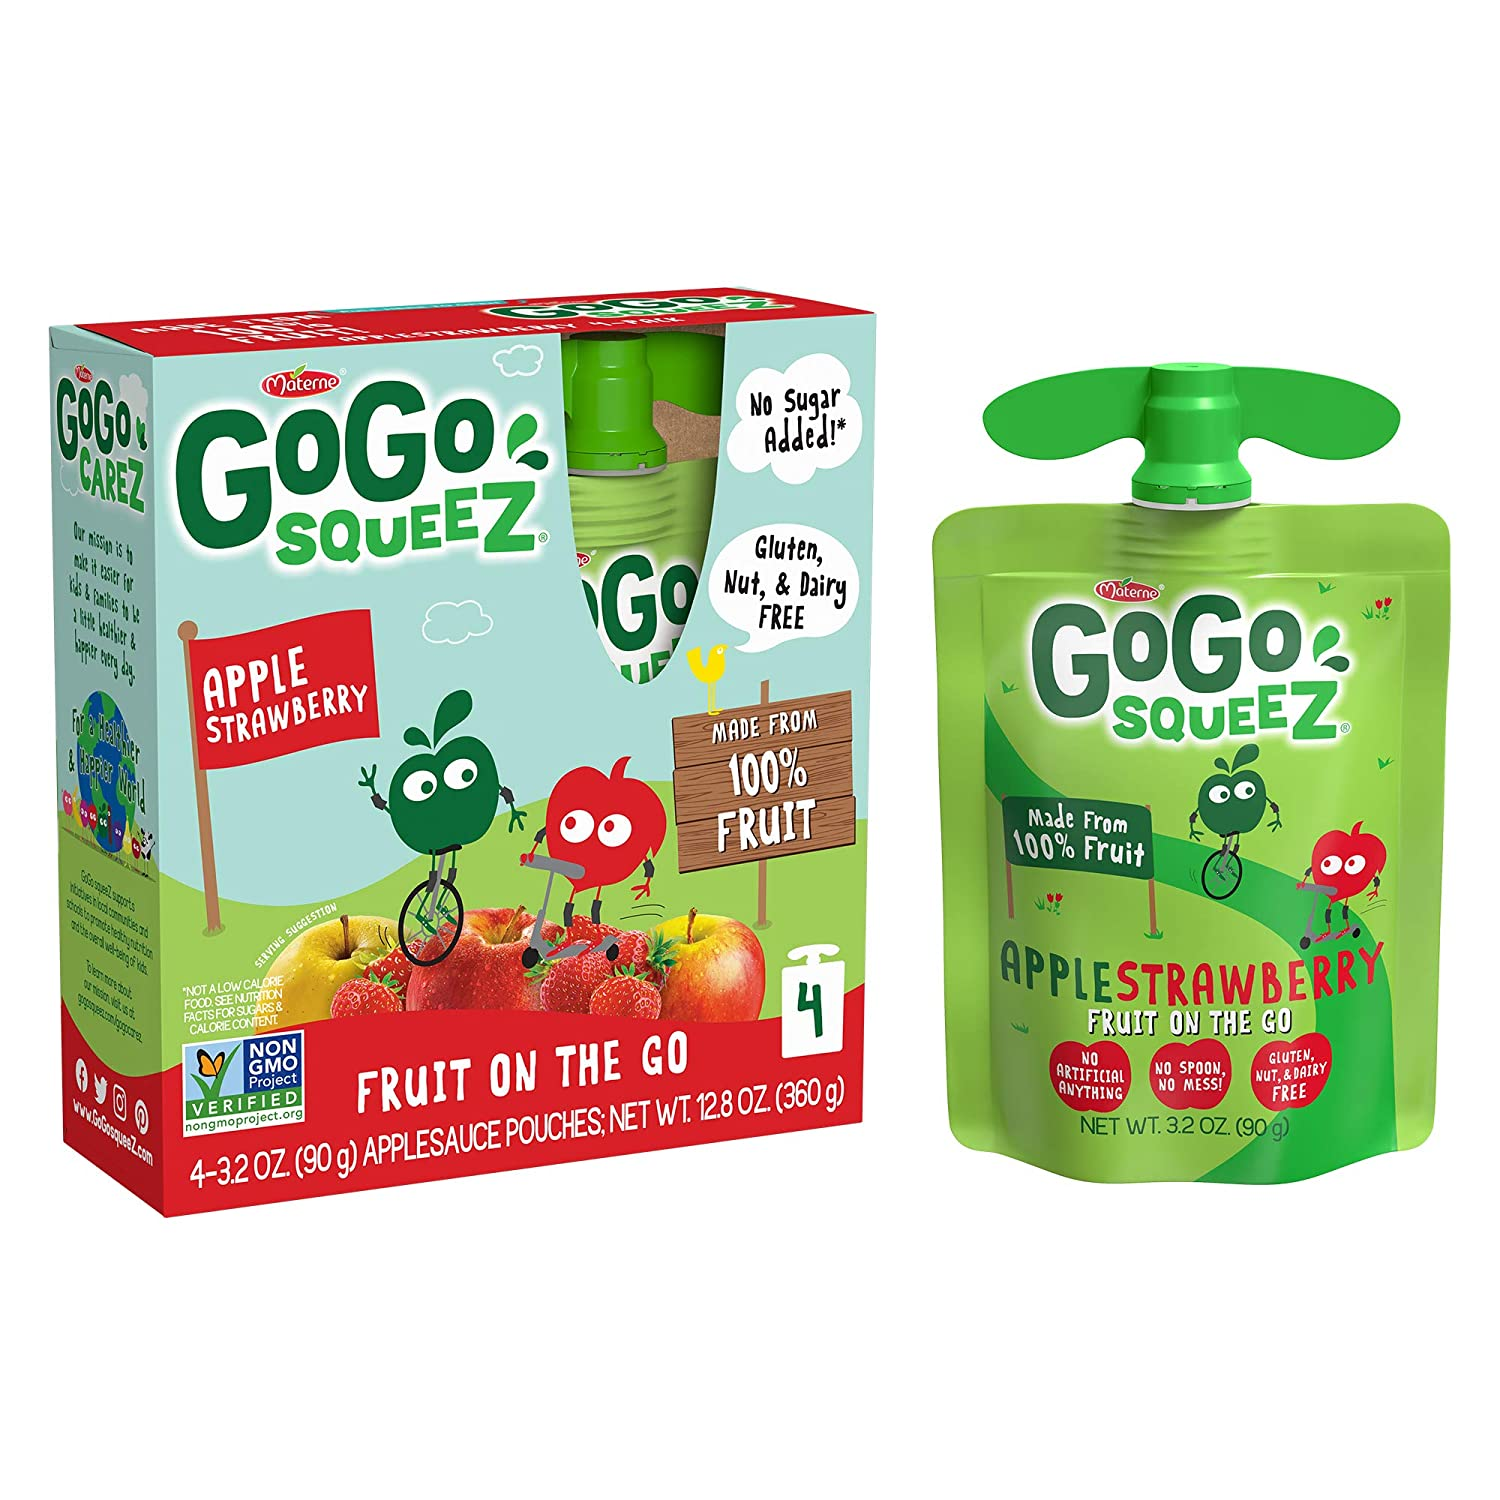 GoGo squeeZ Applesauce, Apple Strawberry, 3.2 Ounce (4 Pouches), Gluten Free, Vegan Friendly, Unsweetened Applesauce, Recloseable, BPA Free Pouches